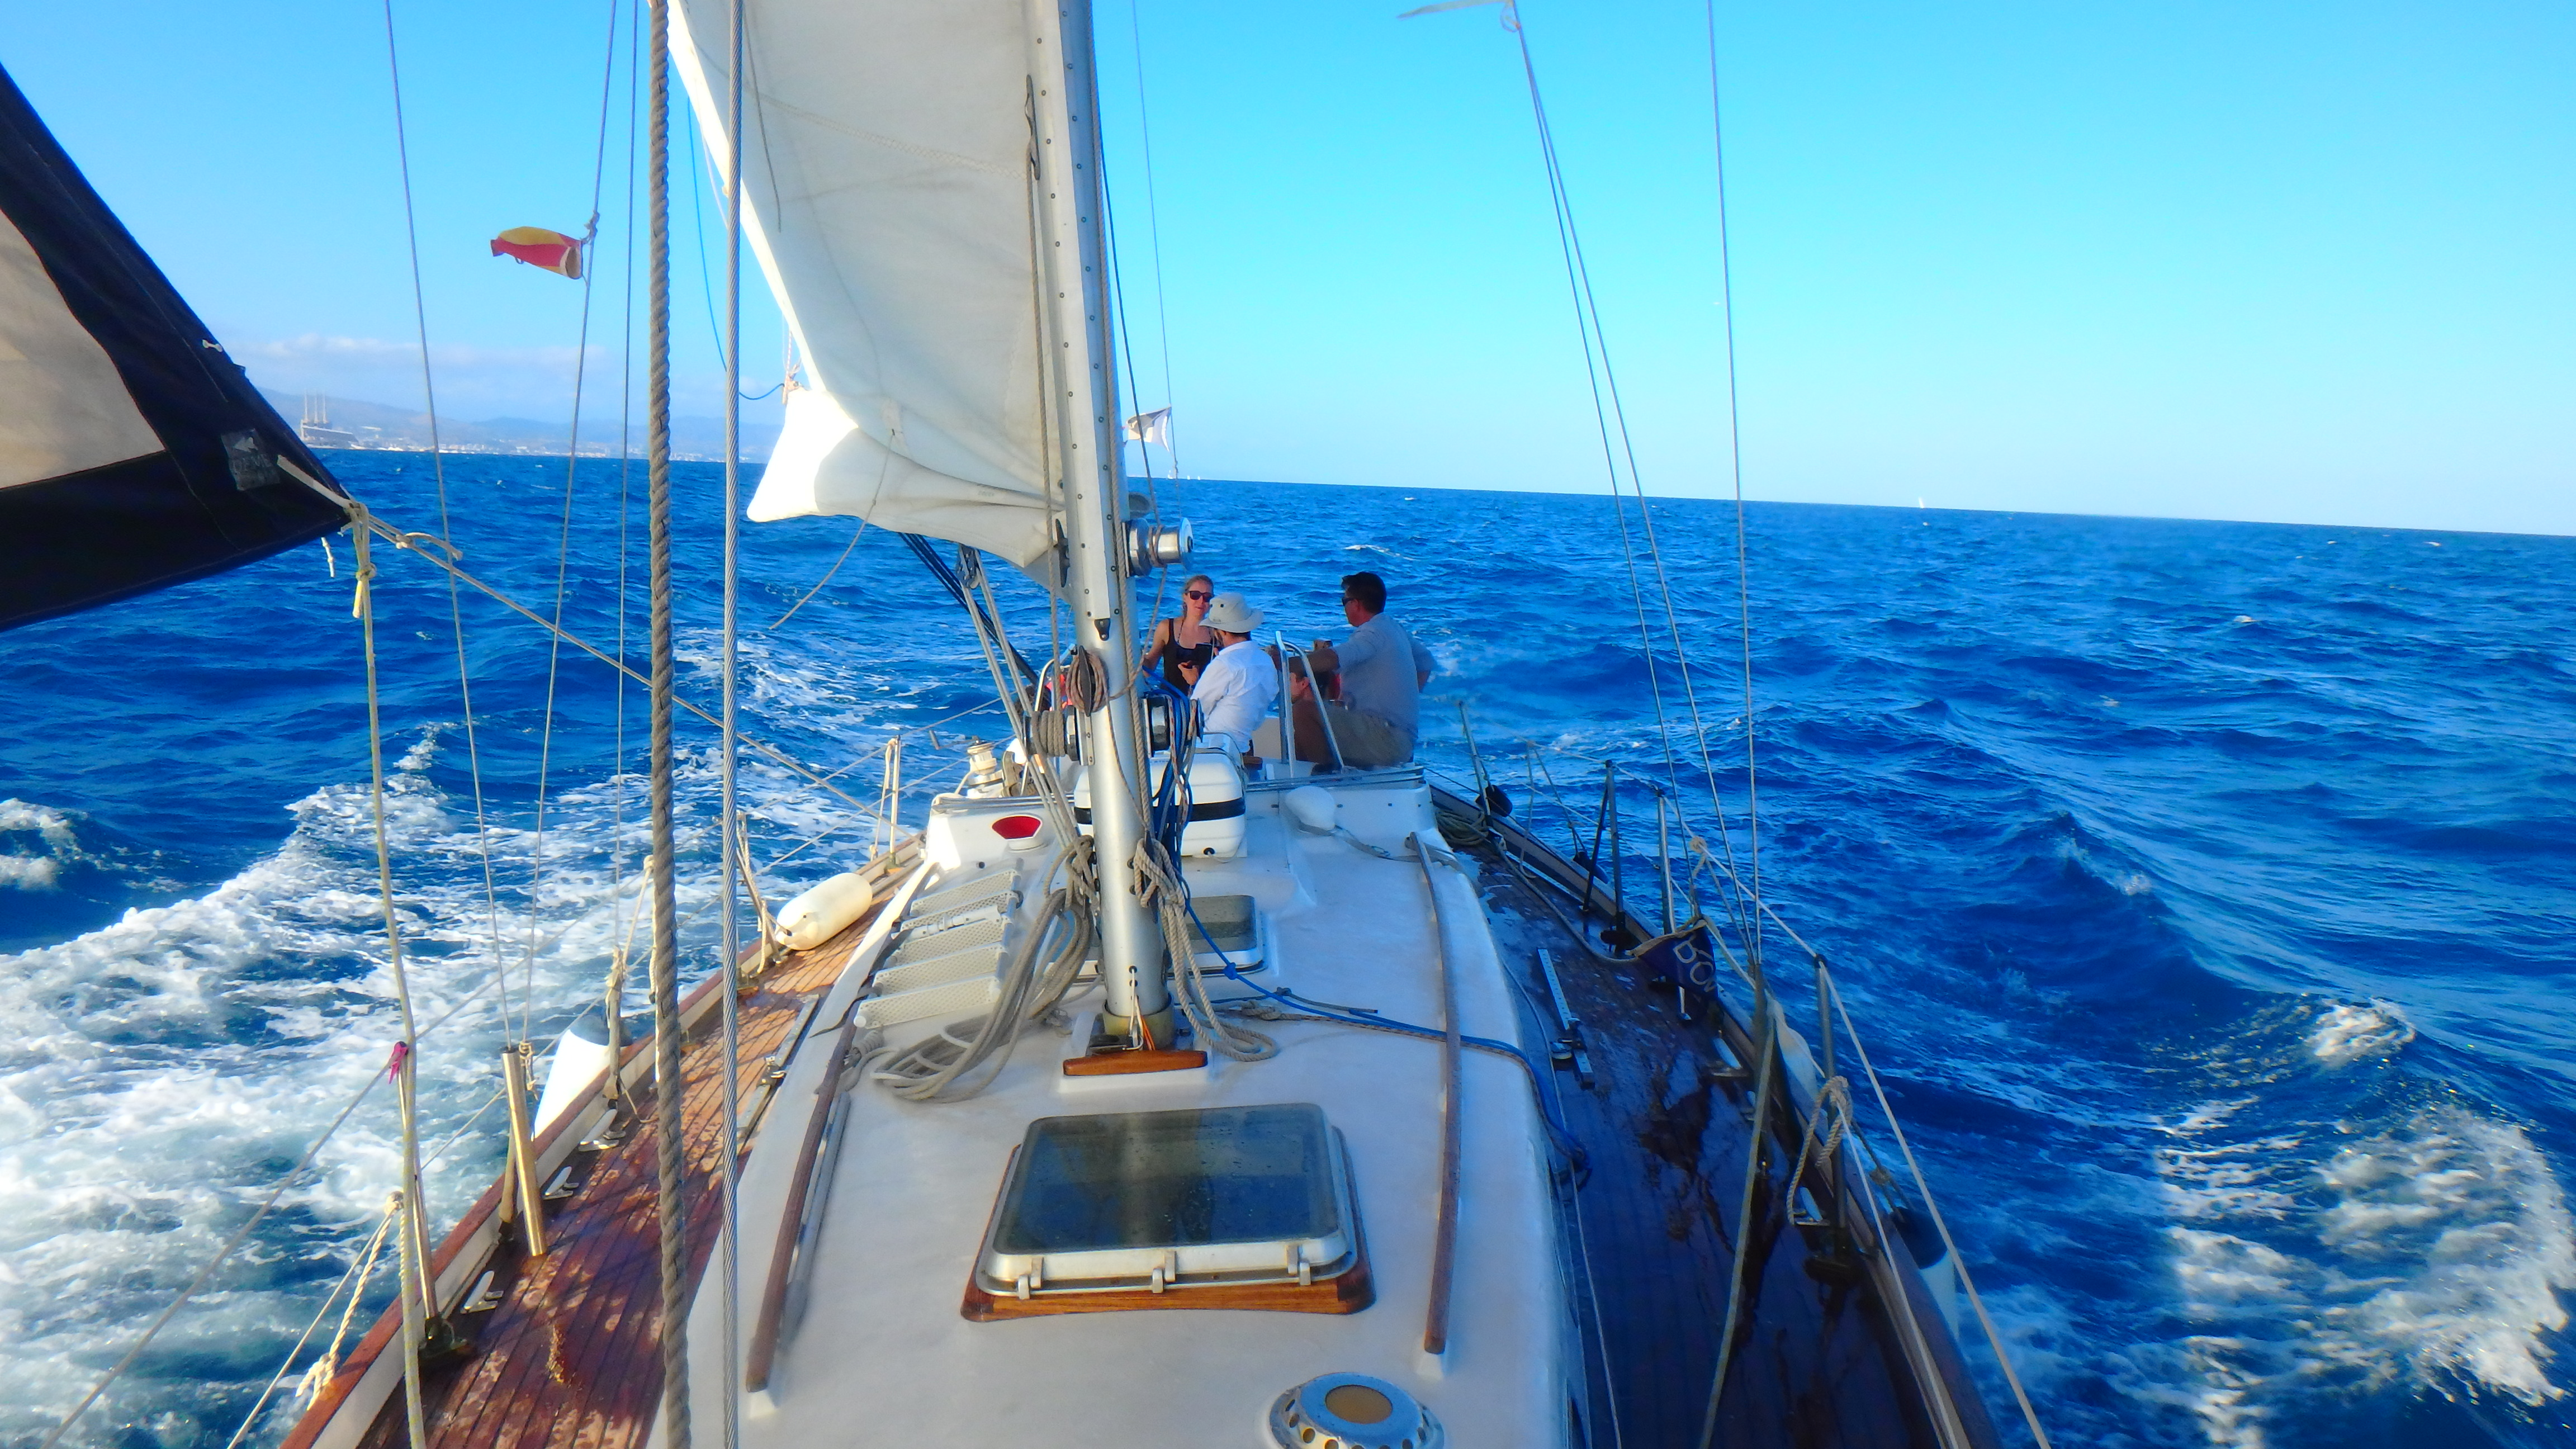 Private tour on a sailing boat in Barcelona